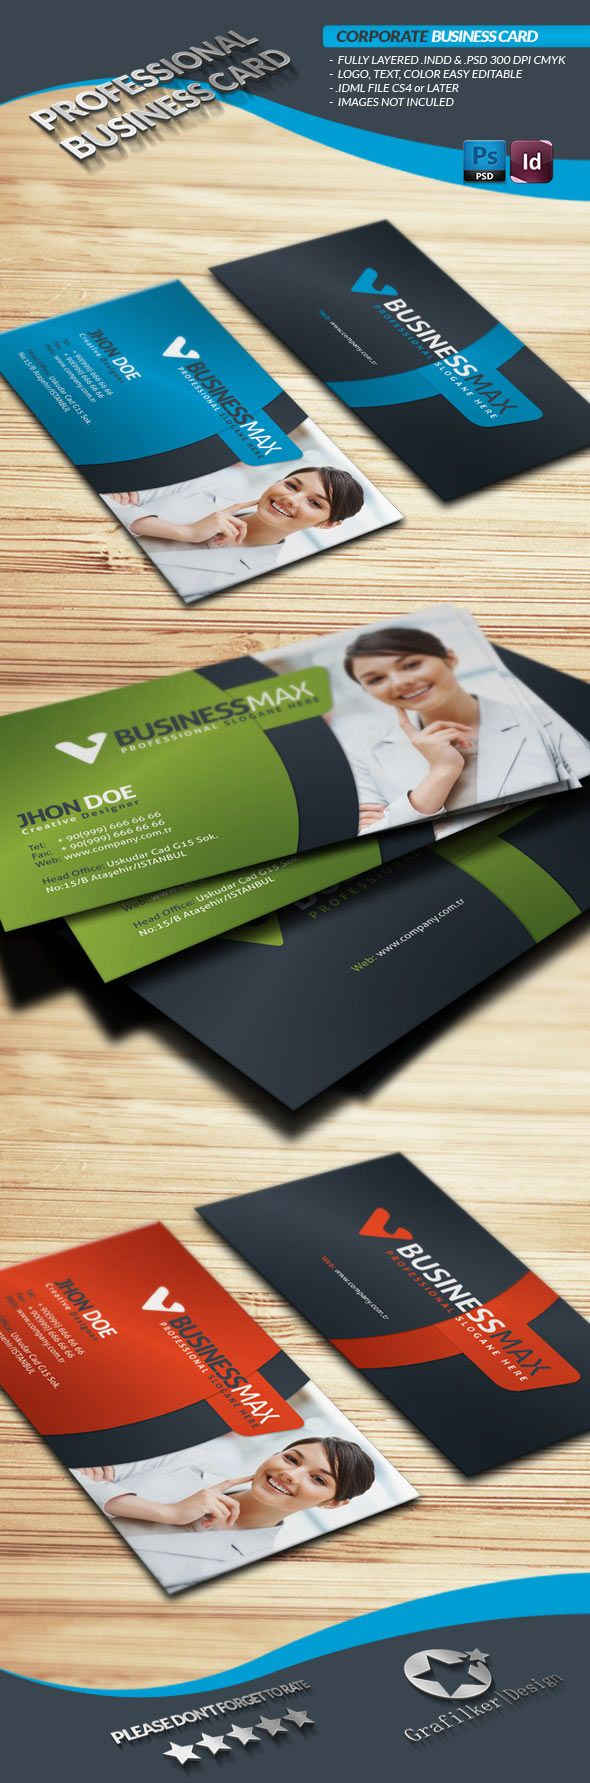 InDesign PremiumBusiness Card Template | Business Card | Pinterest